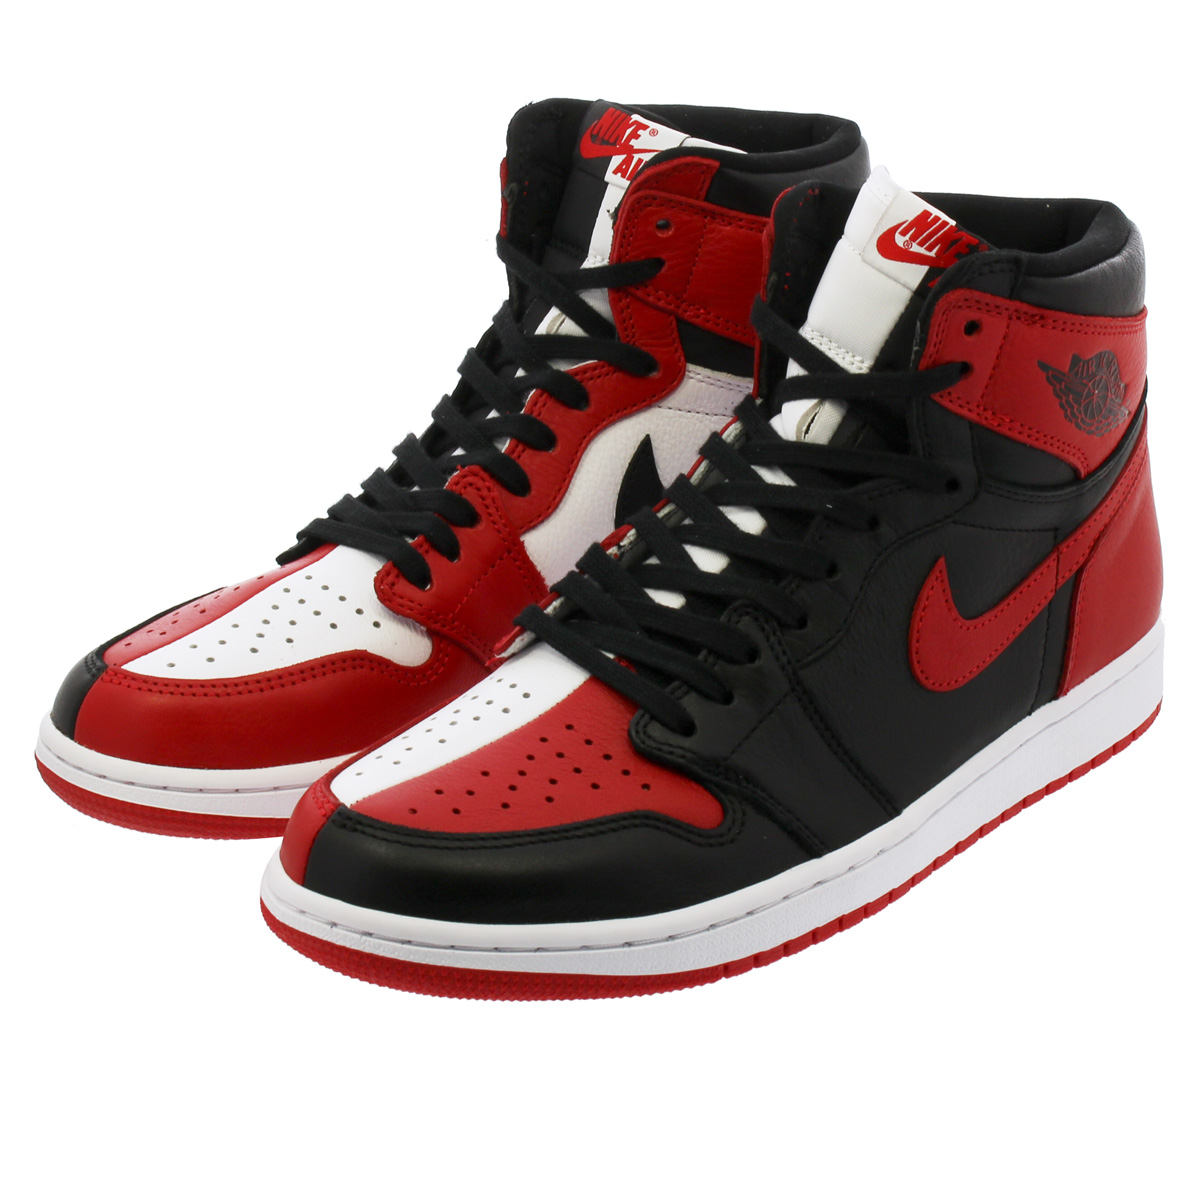 人気絶頂 【ビッグサイズ ar9880-023】 NIKE AIR JORDAN 1 RETRO 1 HIGH レトロ OG【HOMAGE TO HOME】【LIMITED 2300】【NUMBERED】 ナイキ エア ジョーダン 1 レトロ ハイ OG BLACK/WHITE/UNIVERSITY RED ar9880-023, coen:b8827a6b --- canoncity.azurewebsites.net